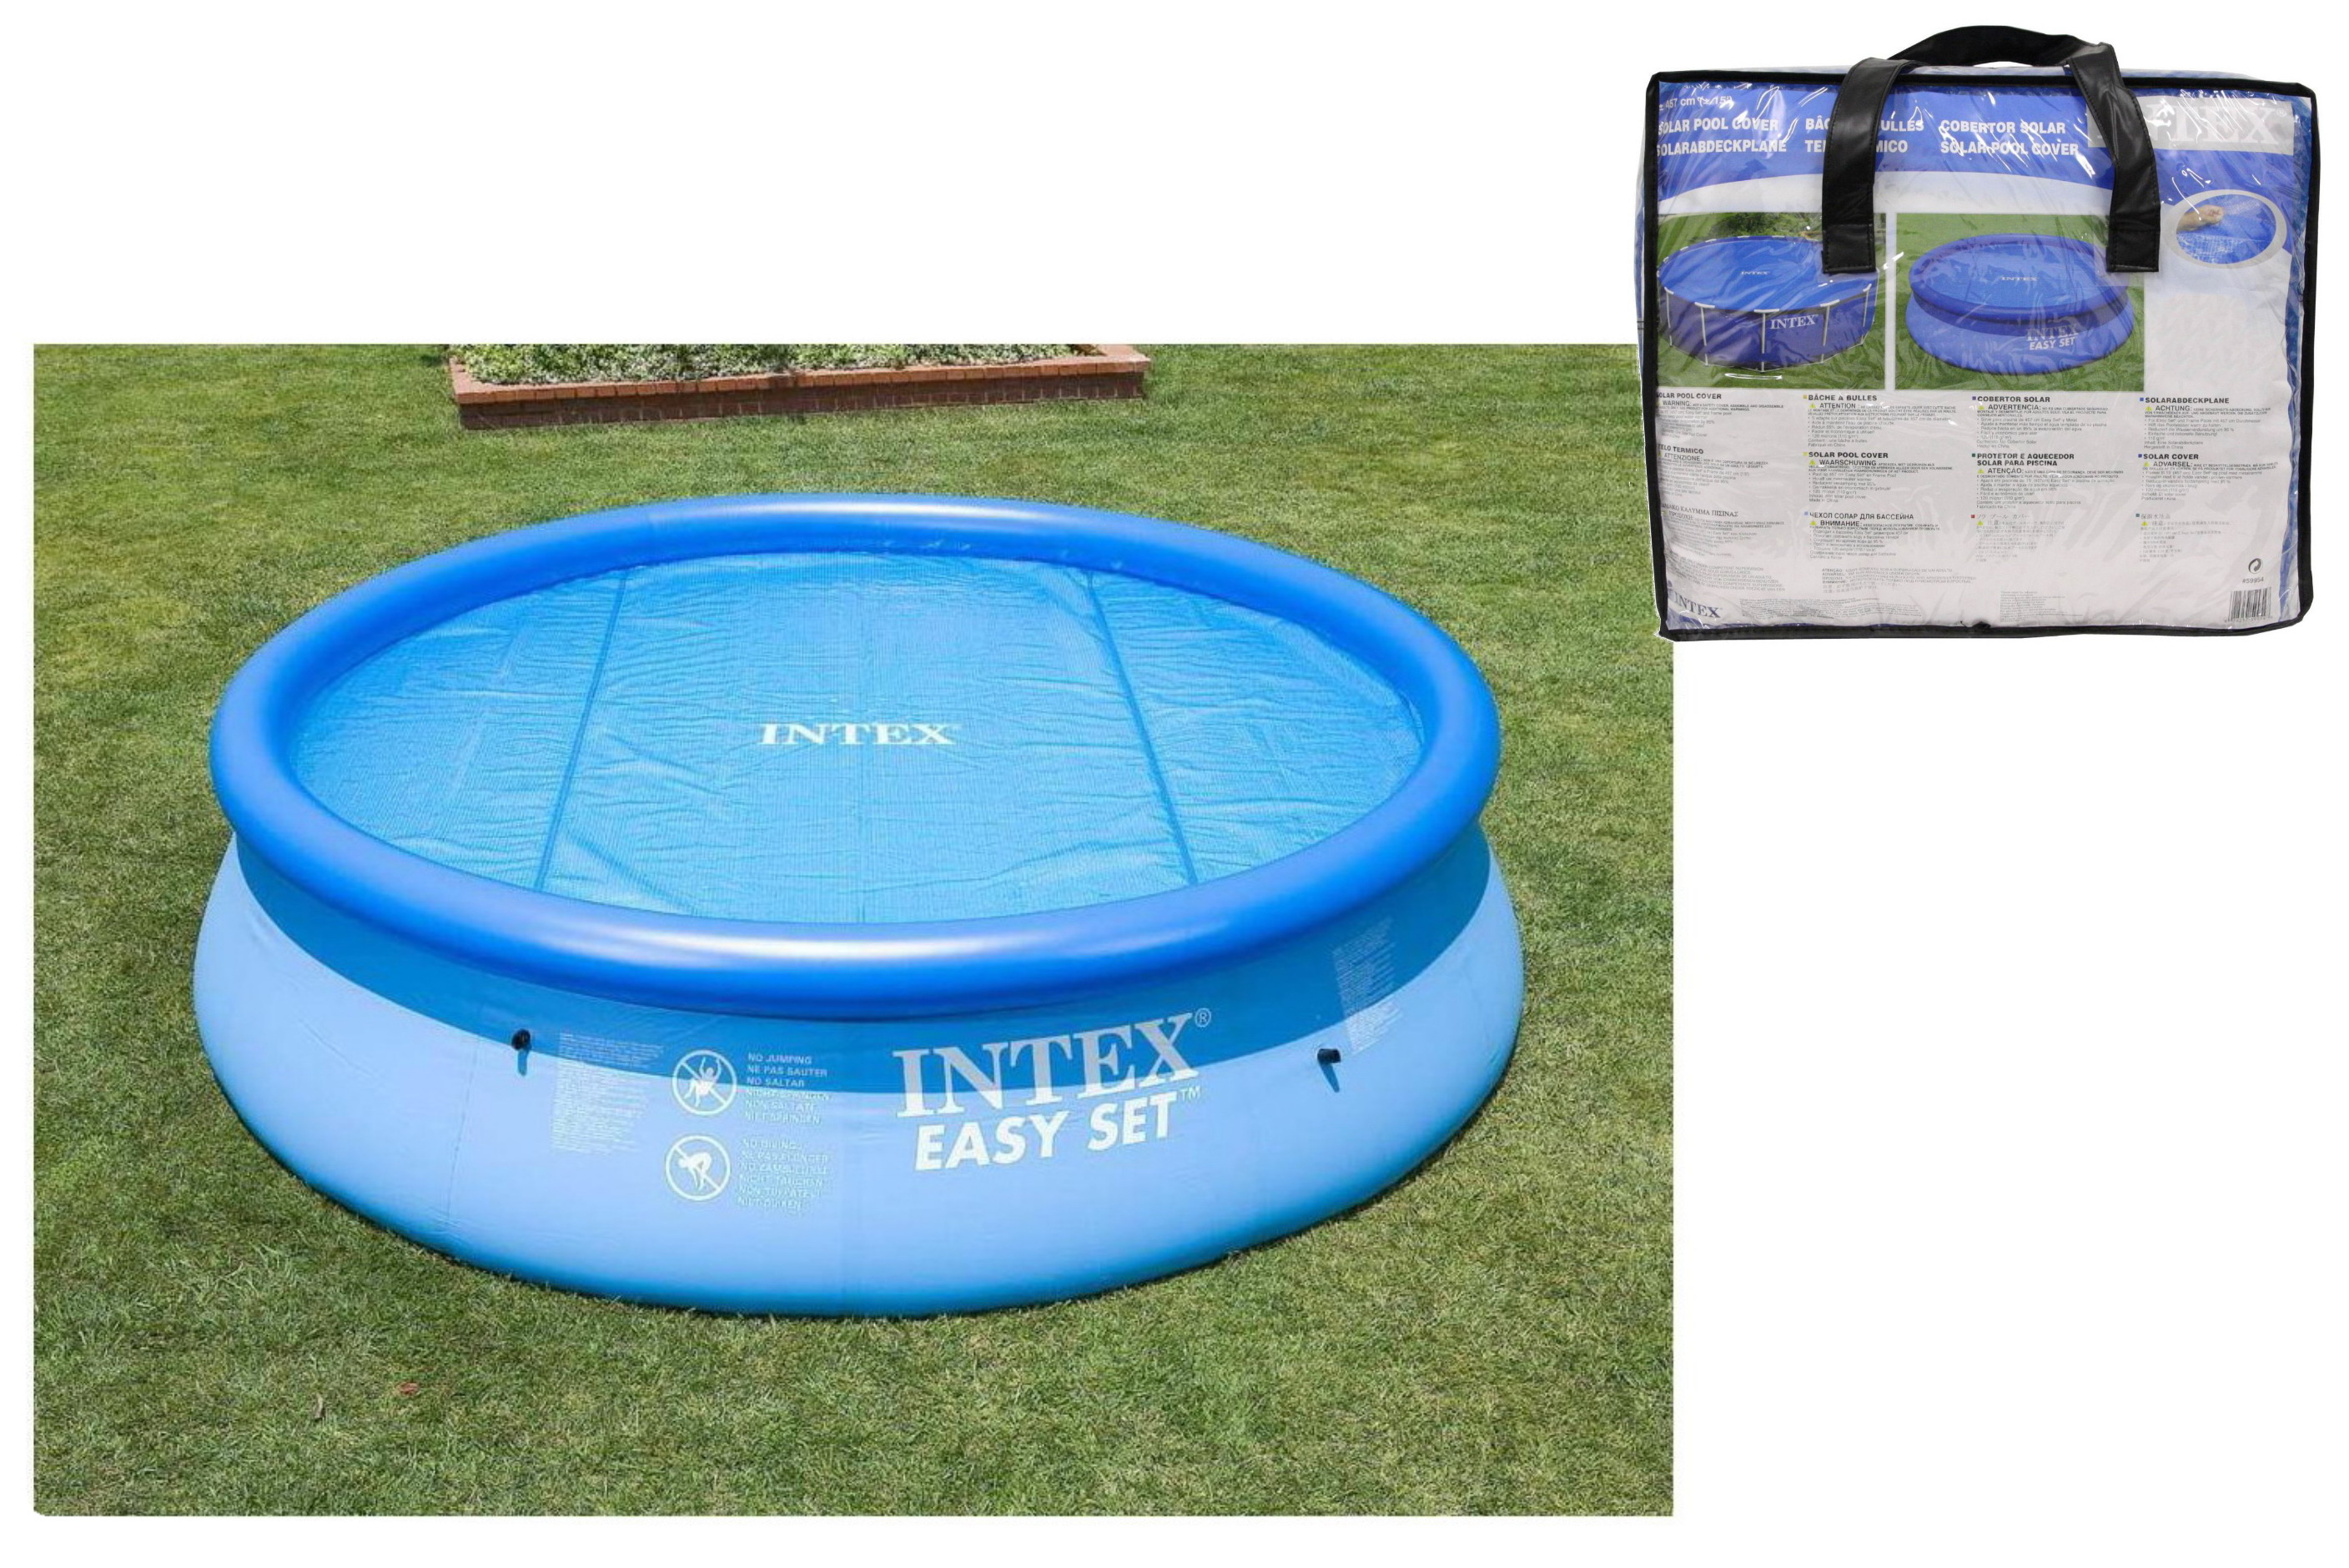 Solar Pool Cover For 15' Pools - Thick Micron Material